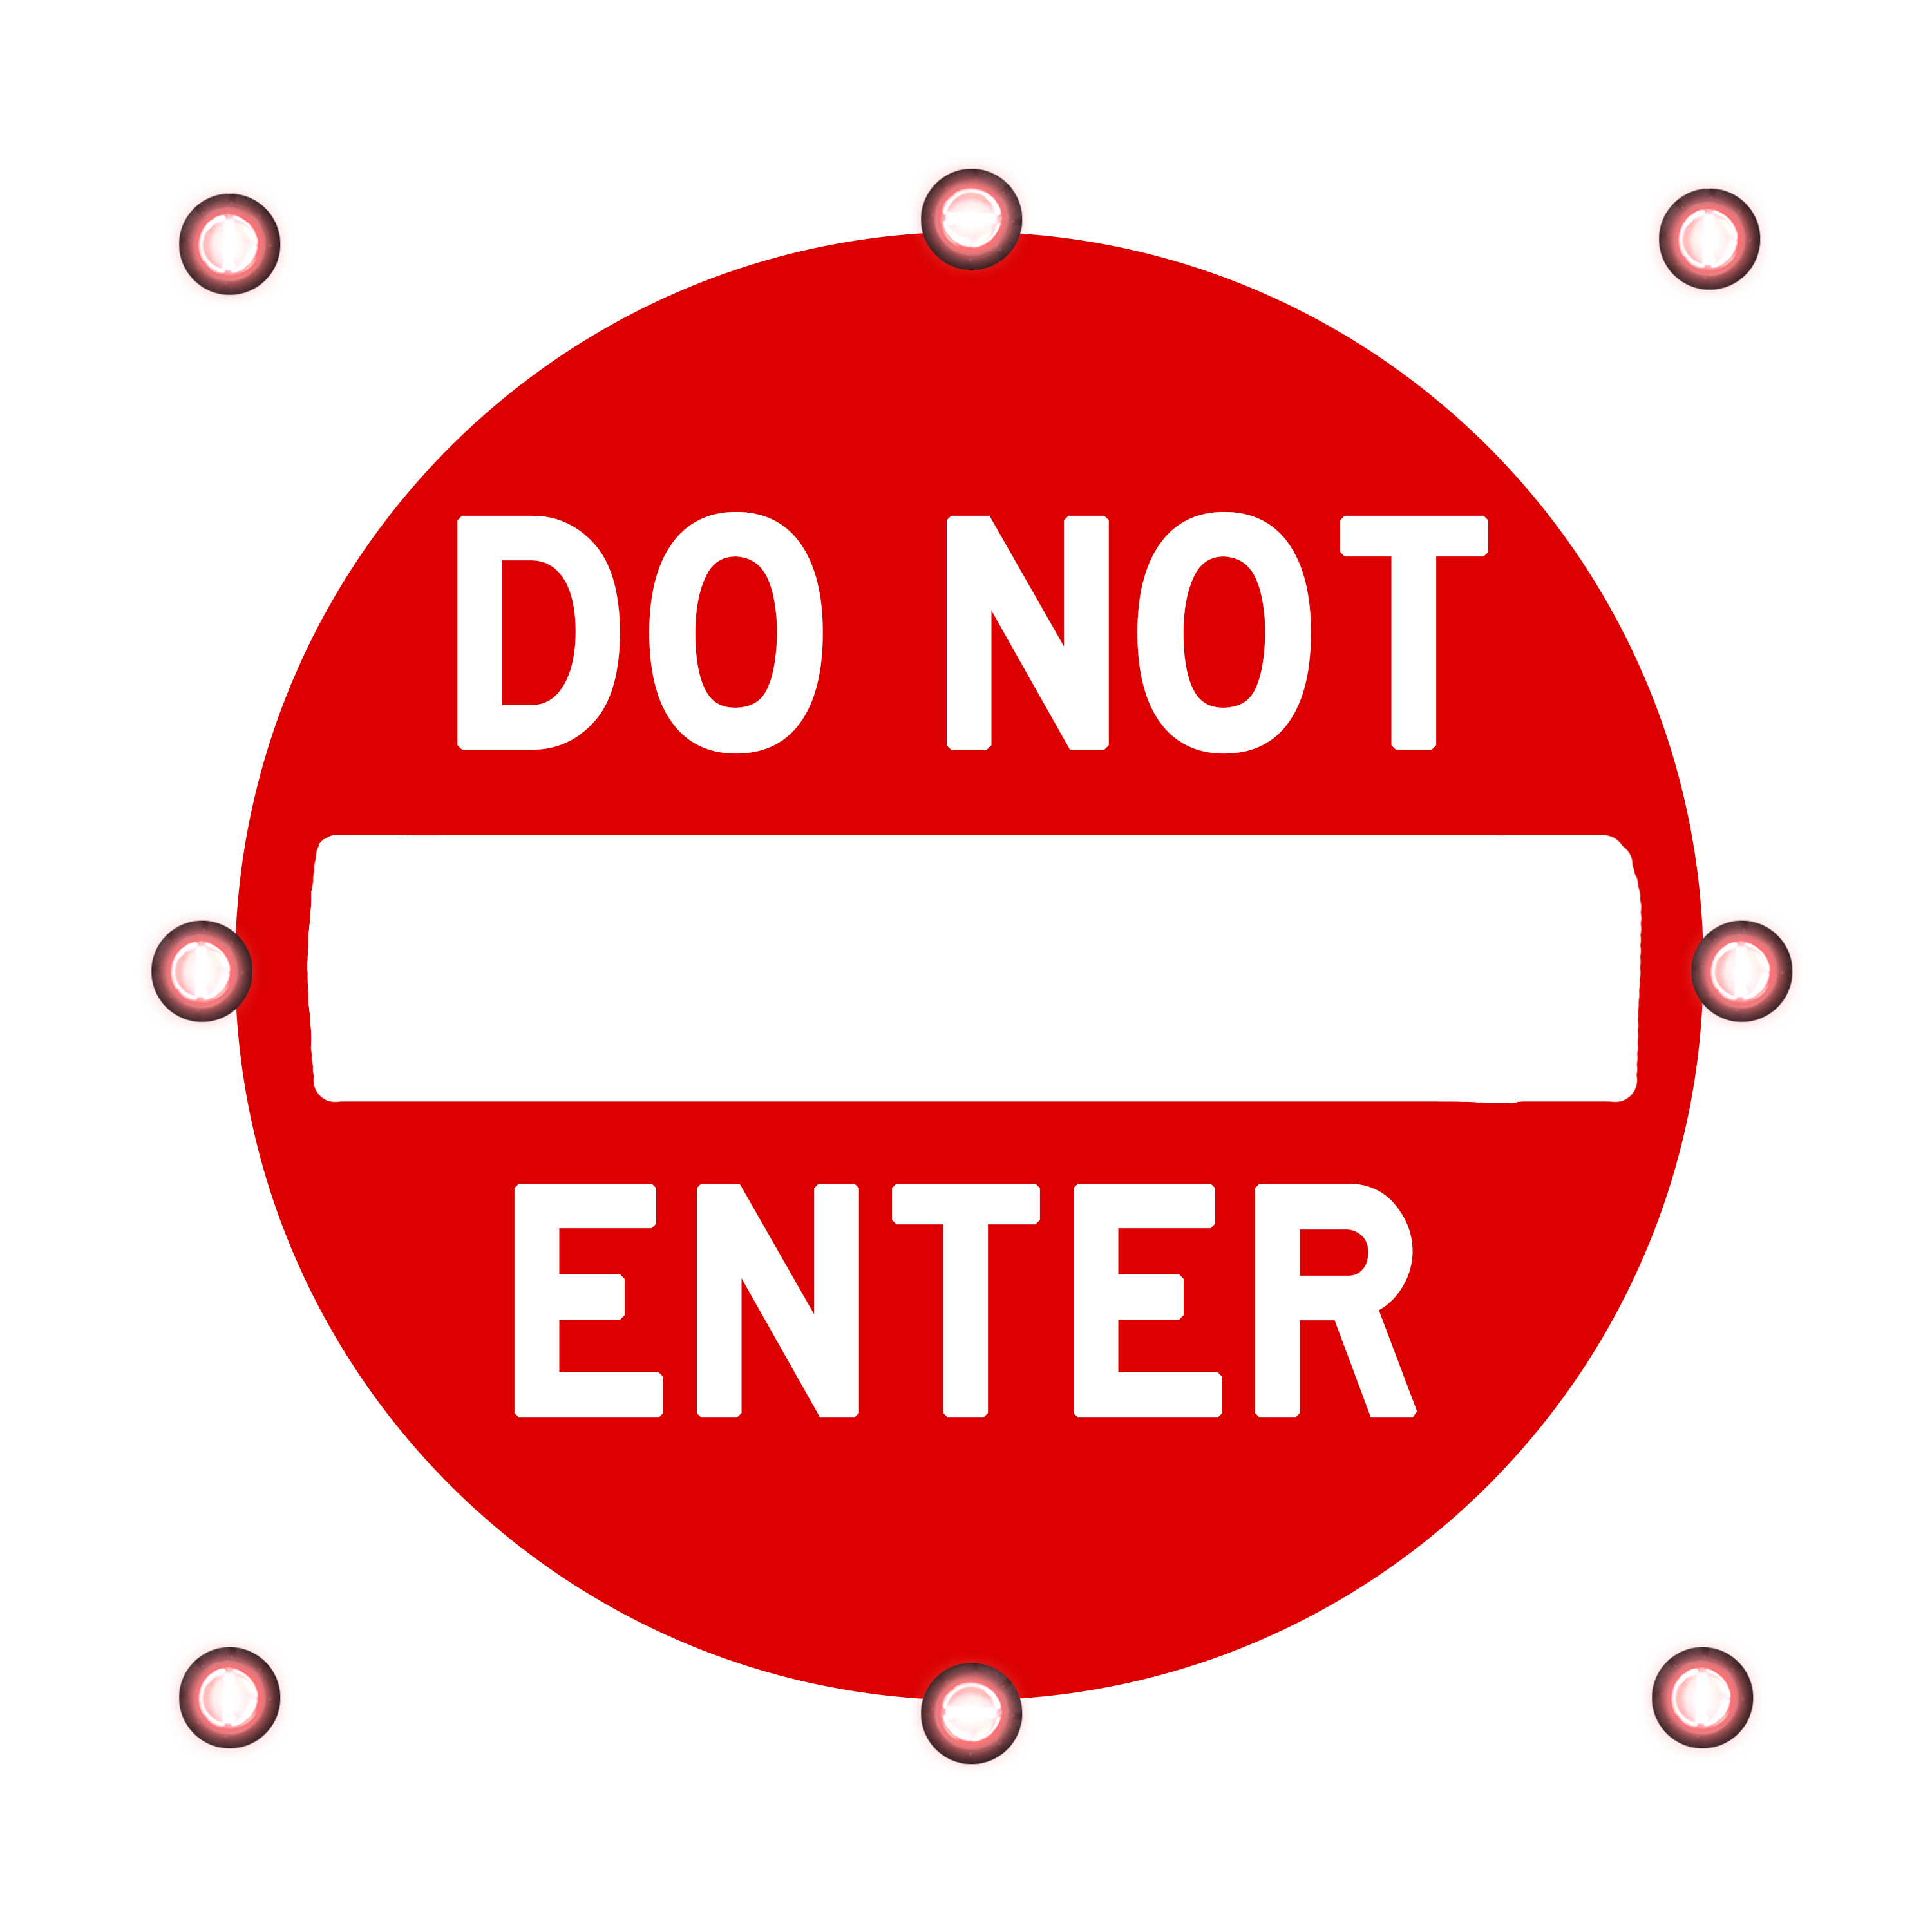 Image logo for Lighted Roadway Signs - DO NOT ENTER Sign